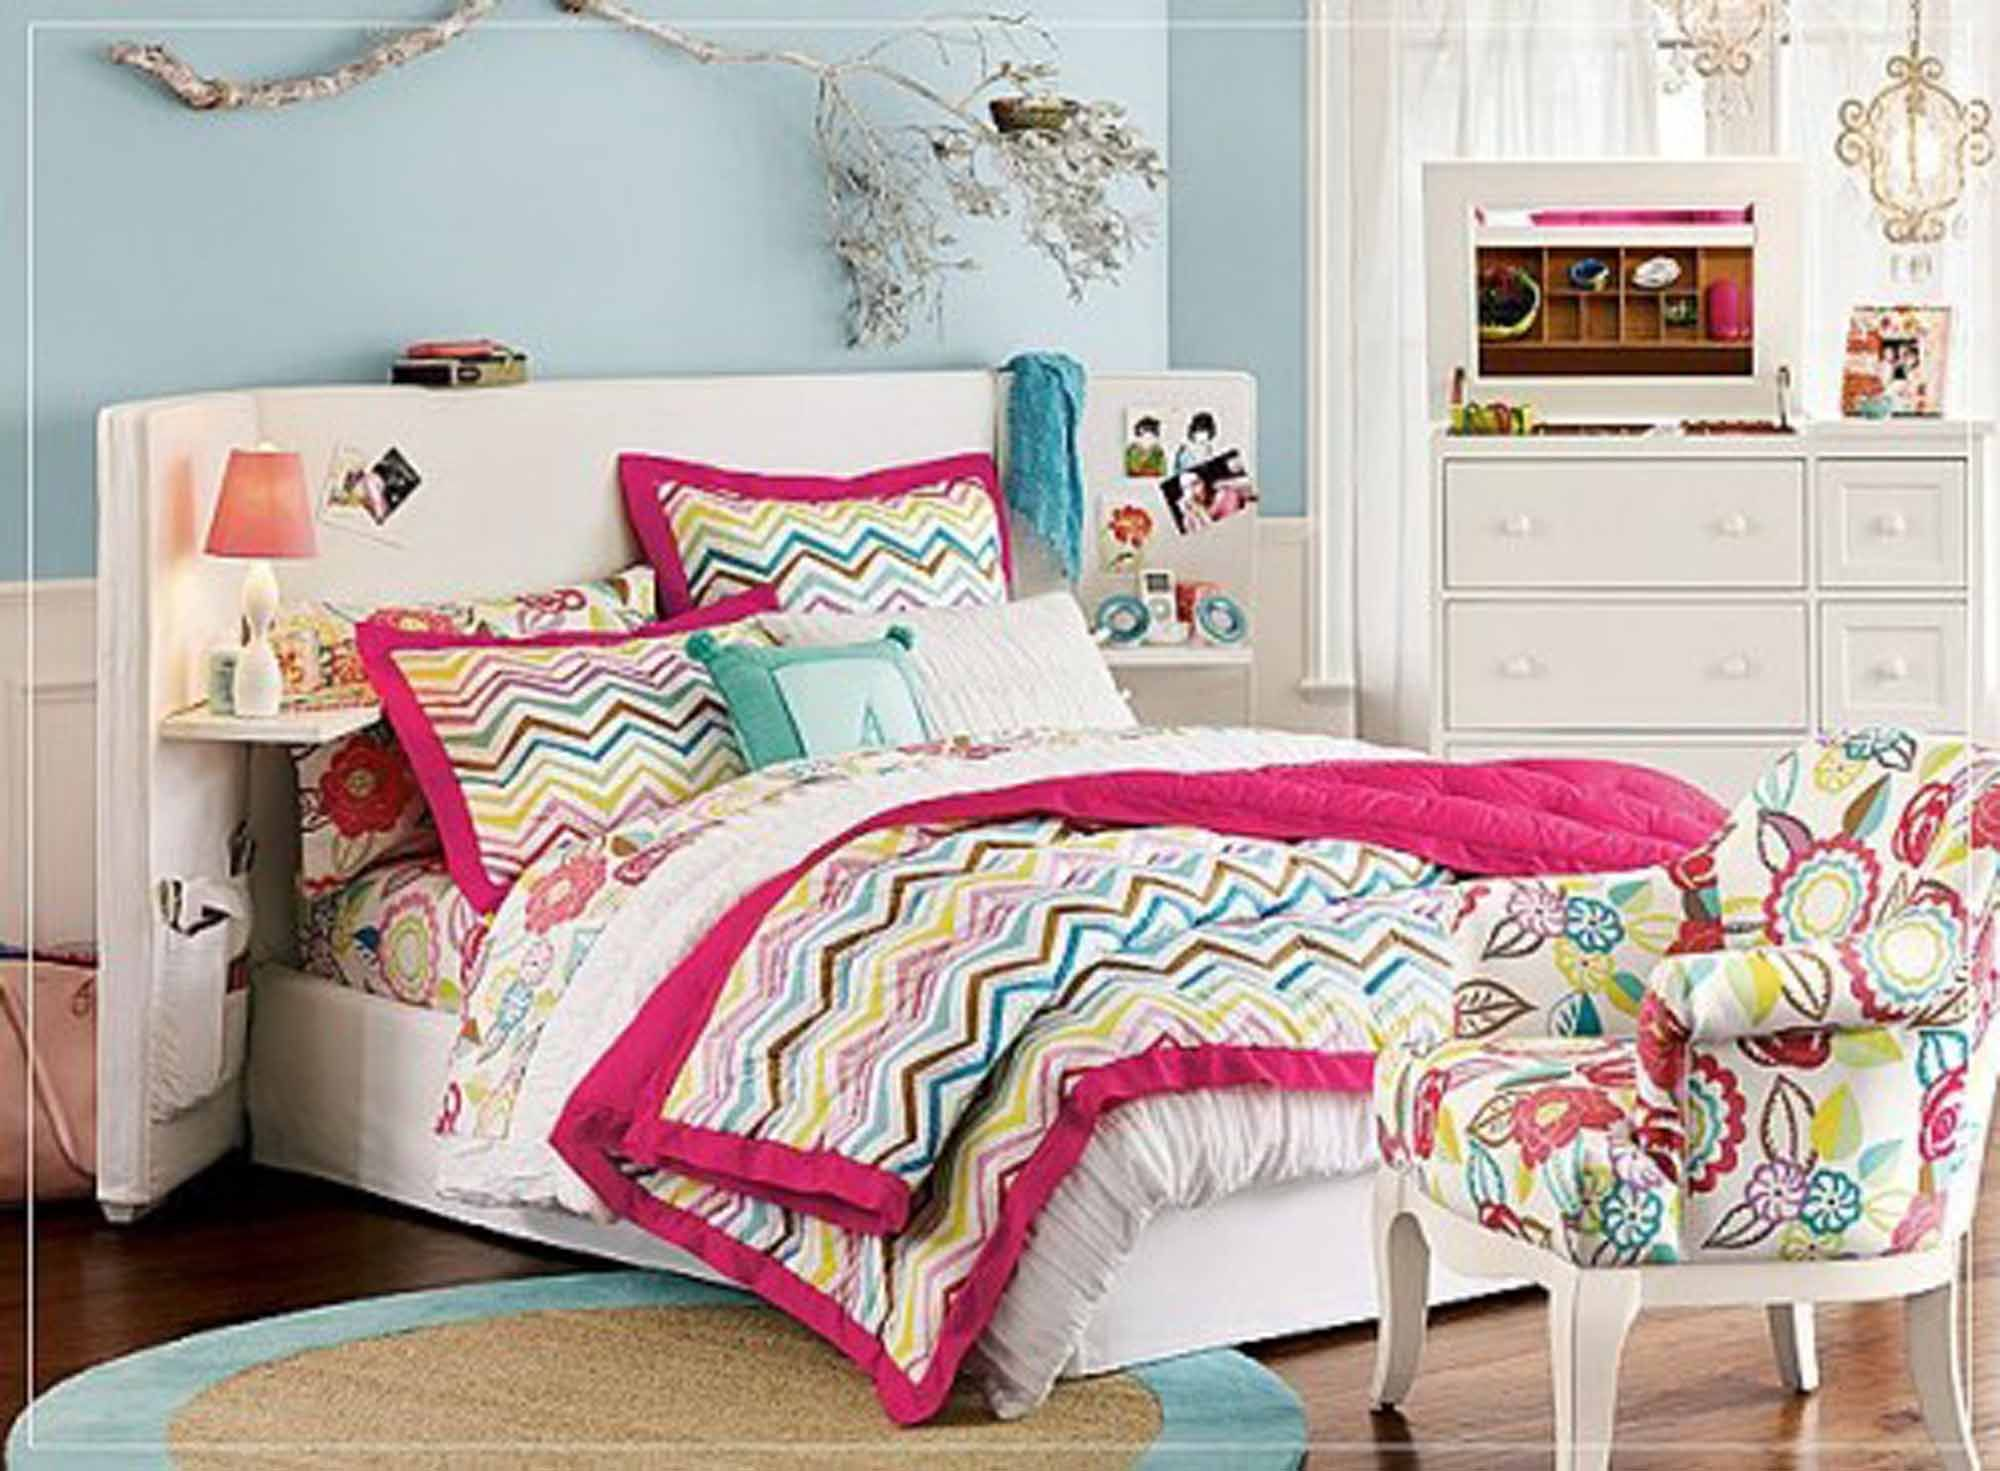 Beautiful Teenage Girl Bedroom Decorating Idea With Queen Bed Frame And Floating Shelves Colorful Chevron